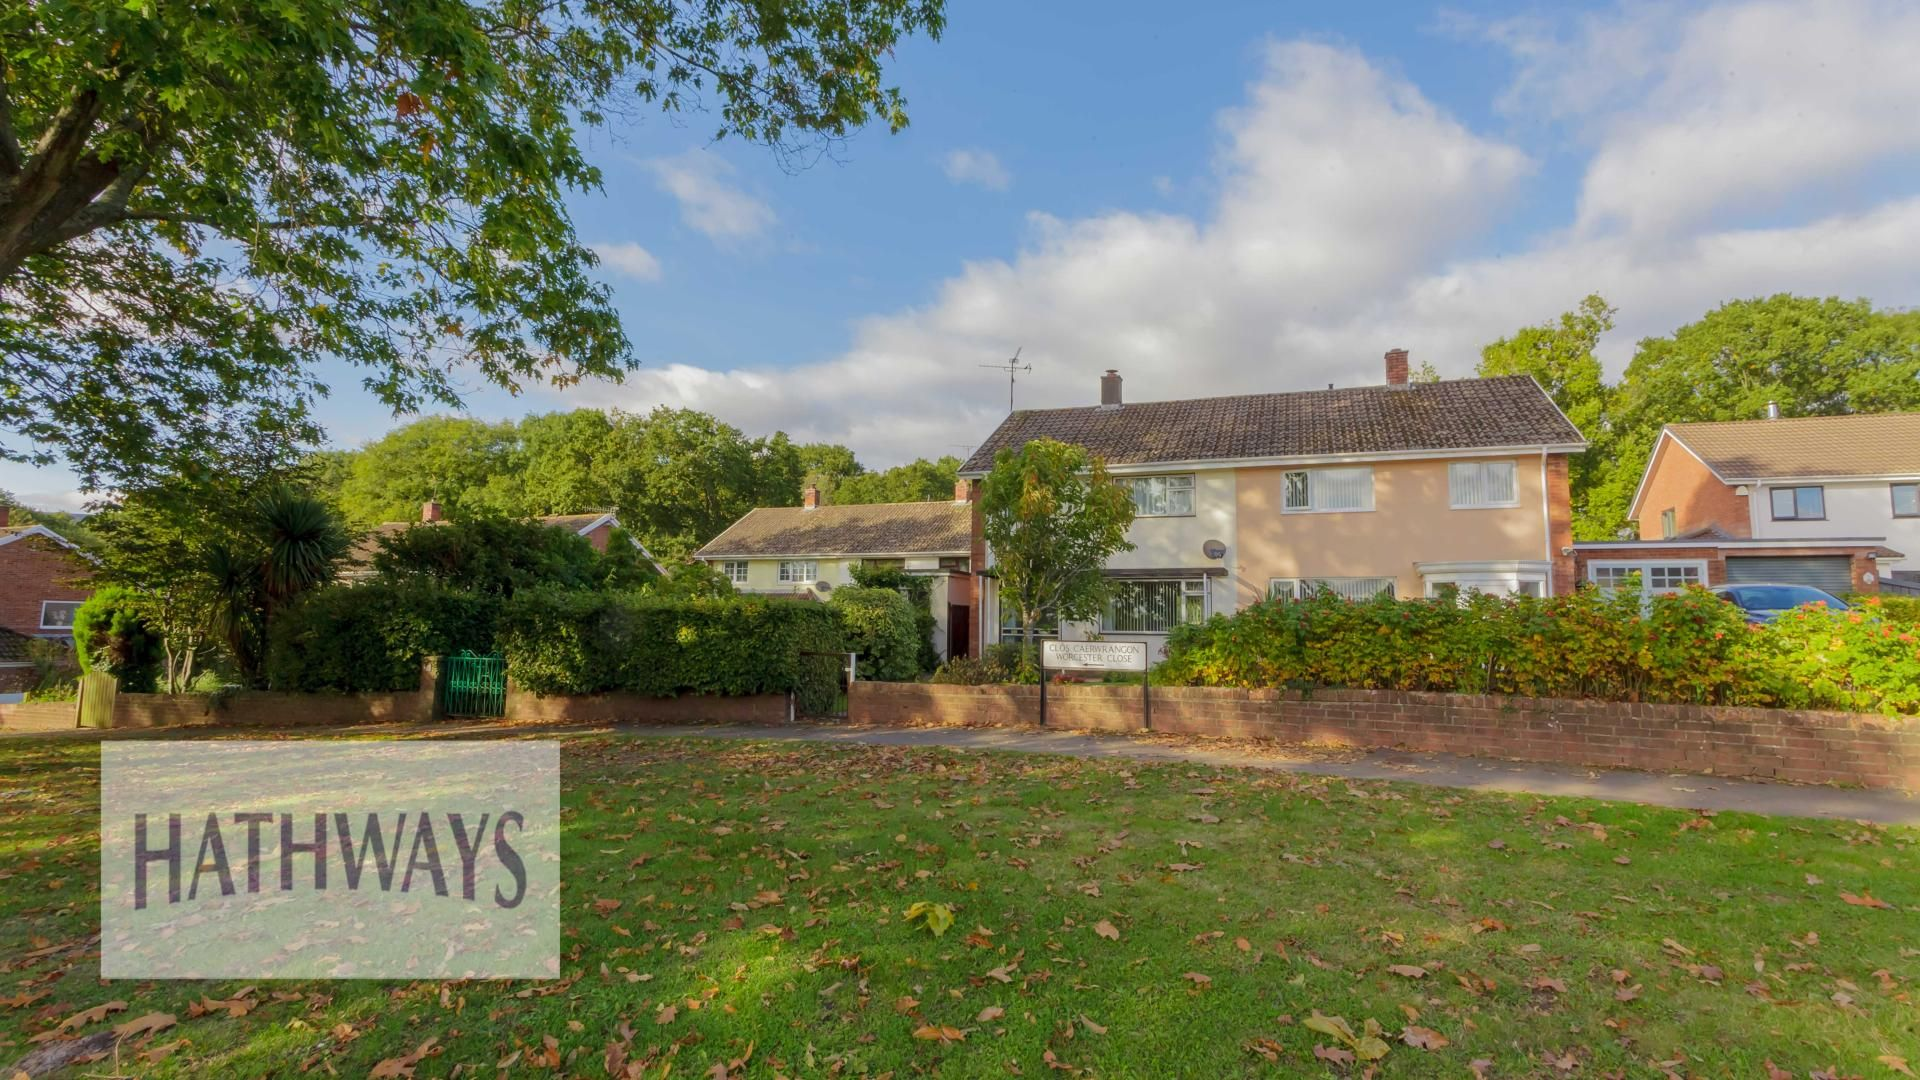 3 bed house for sale in Worcester Close, NP44